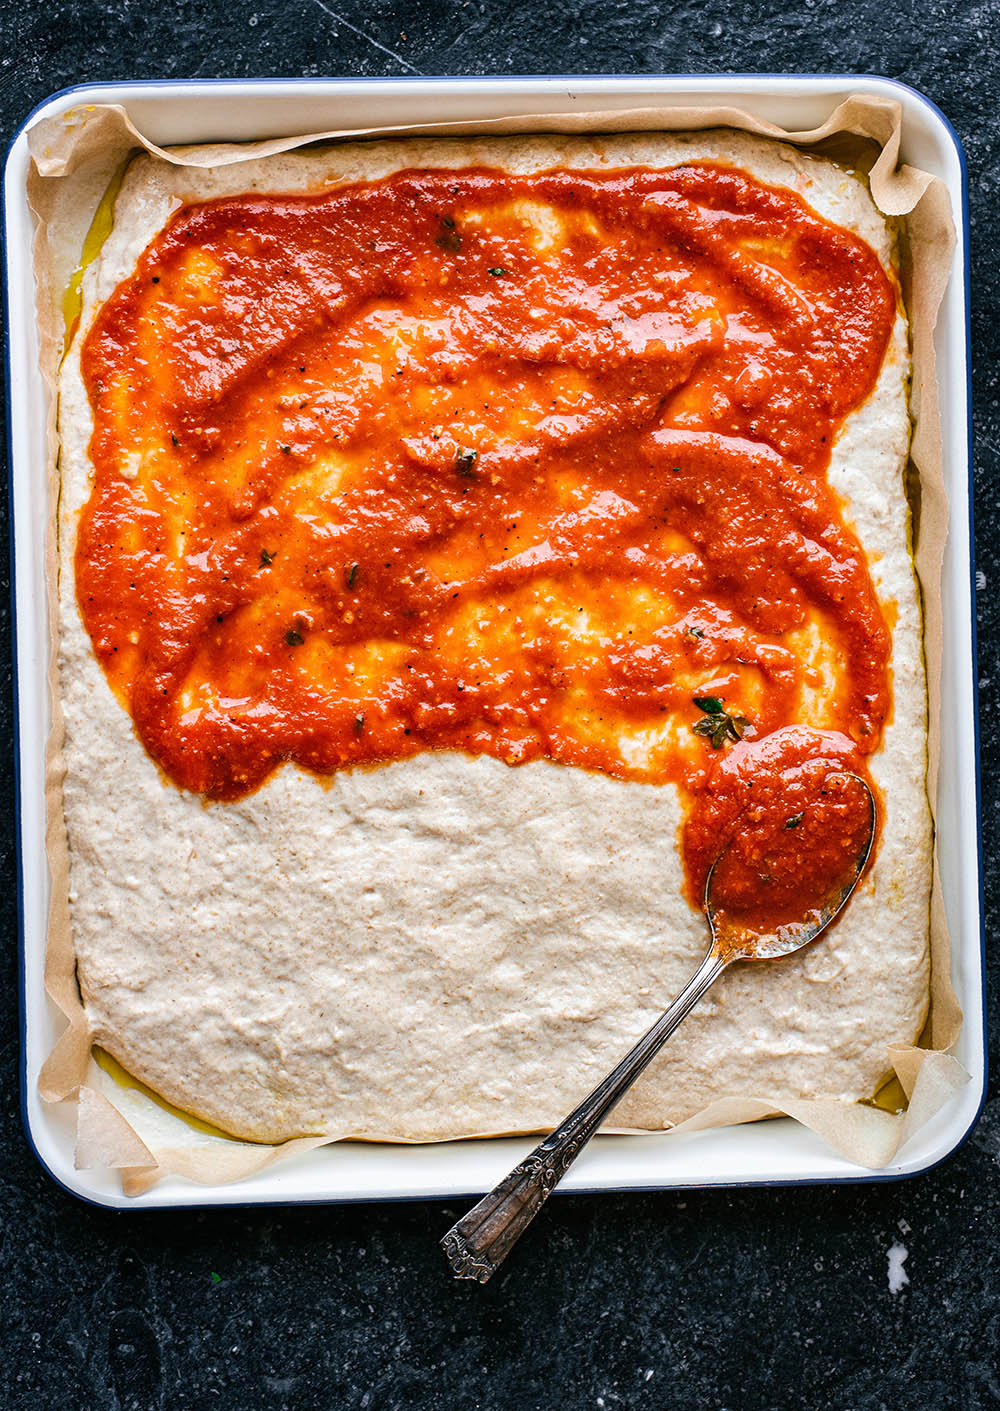 Pizza dough in rectangular dish, half covered in tomato sauce, with spoon.